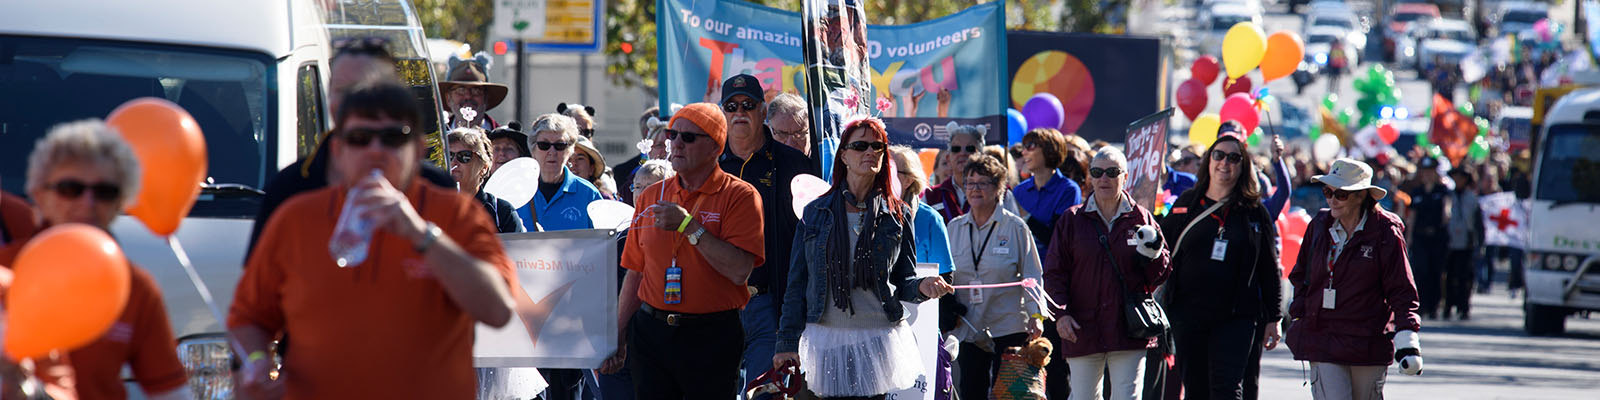 National Volunteer Week Parade Adelaide May 2017